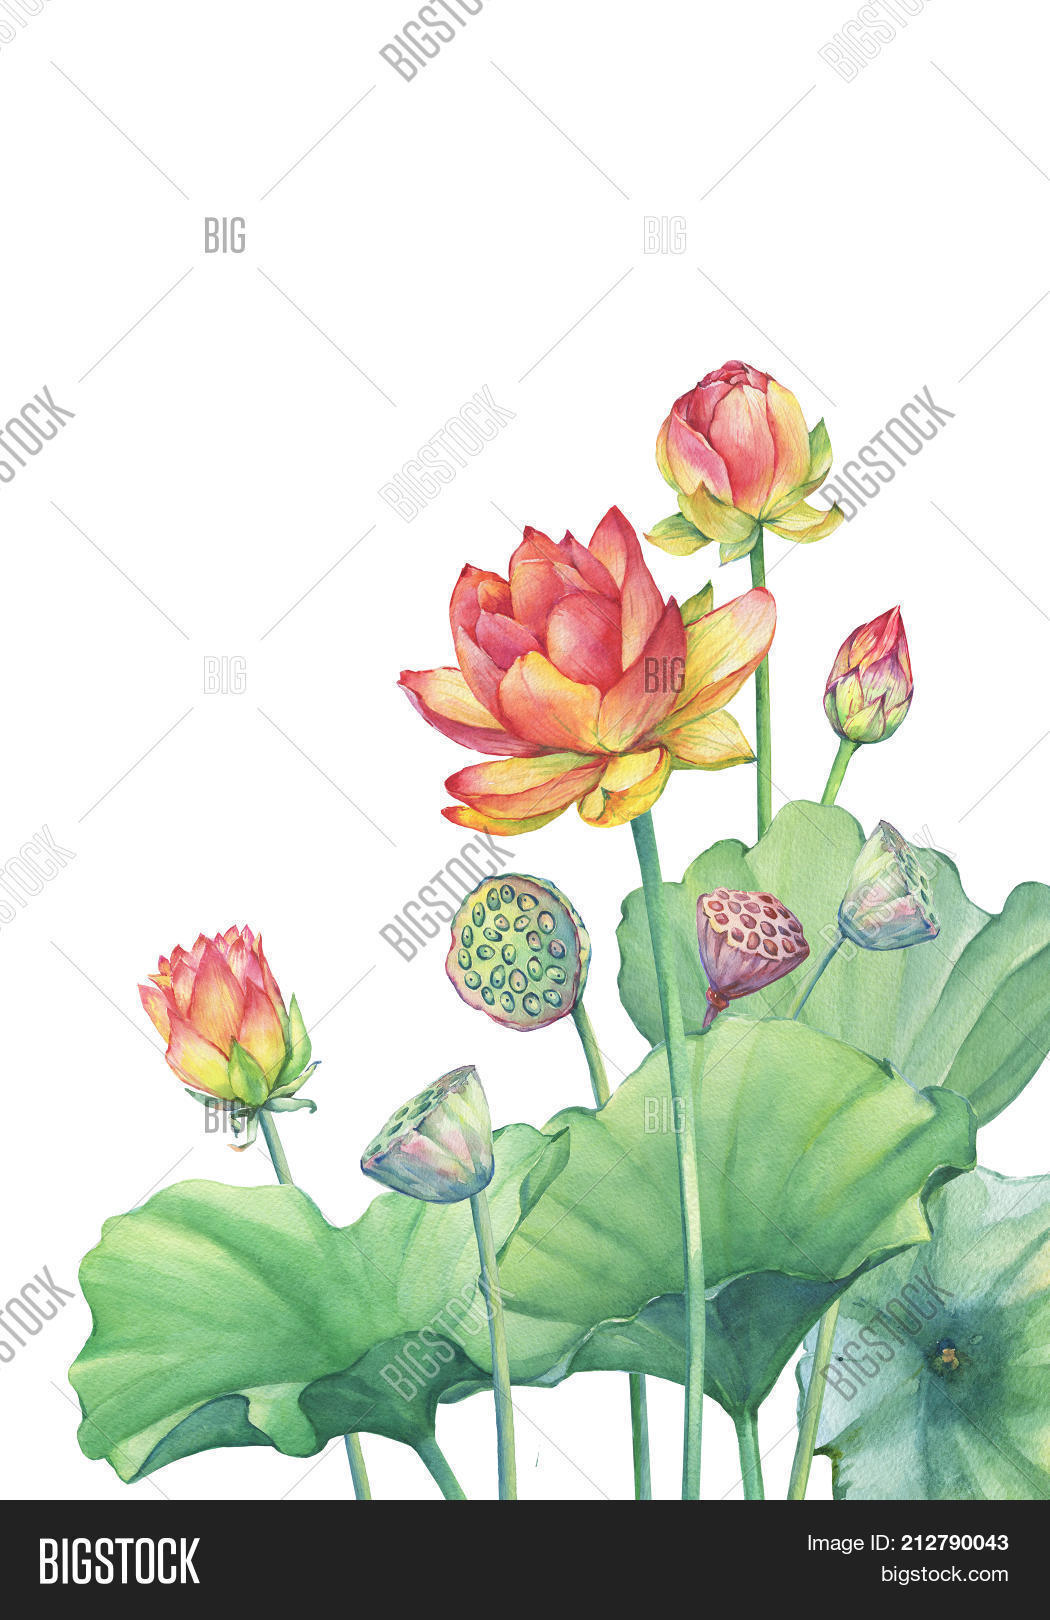 Banner border pink image photo free trial bigstock banner border of pink lotus flower with leaves seed head bud water mightylinksfo